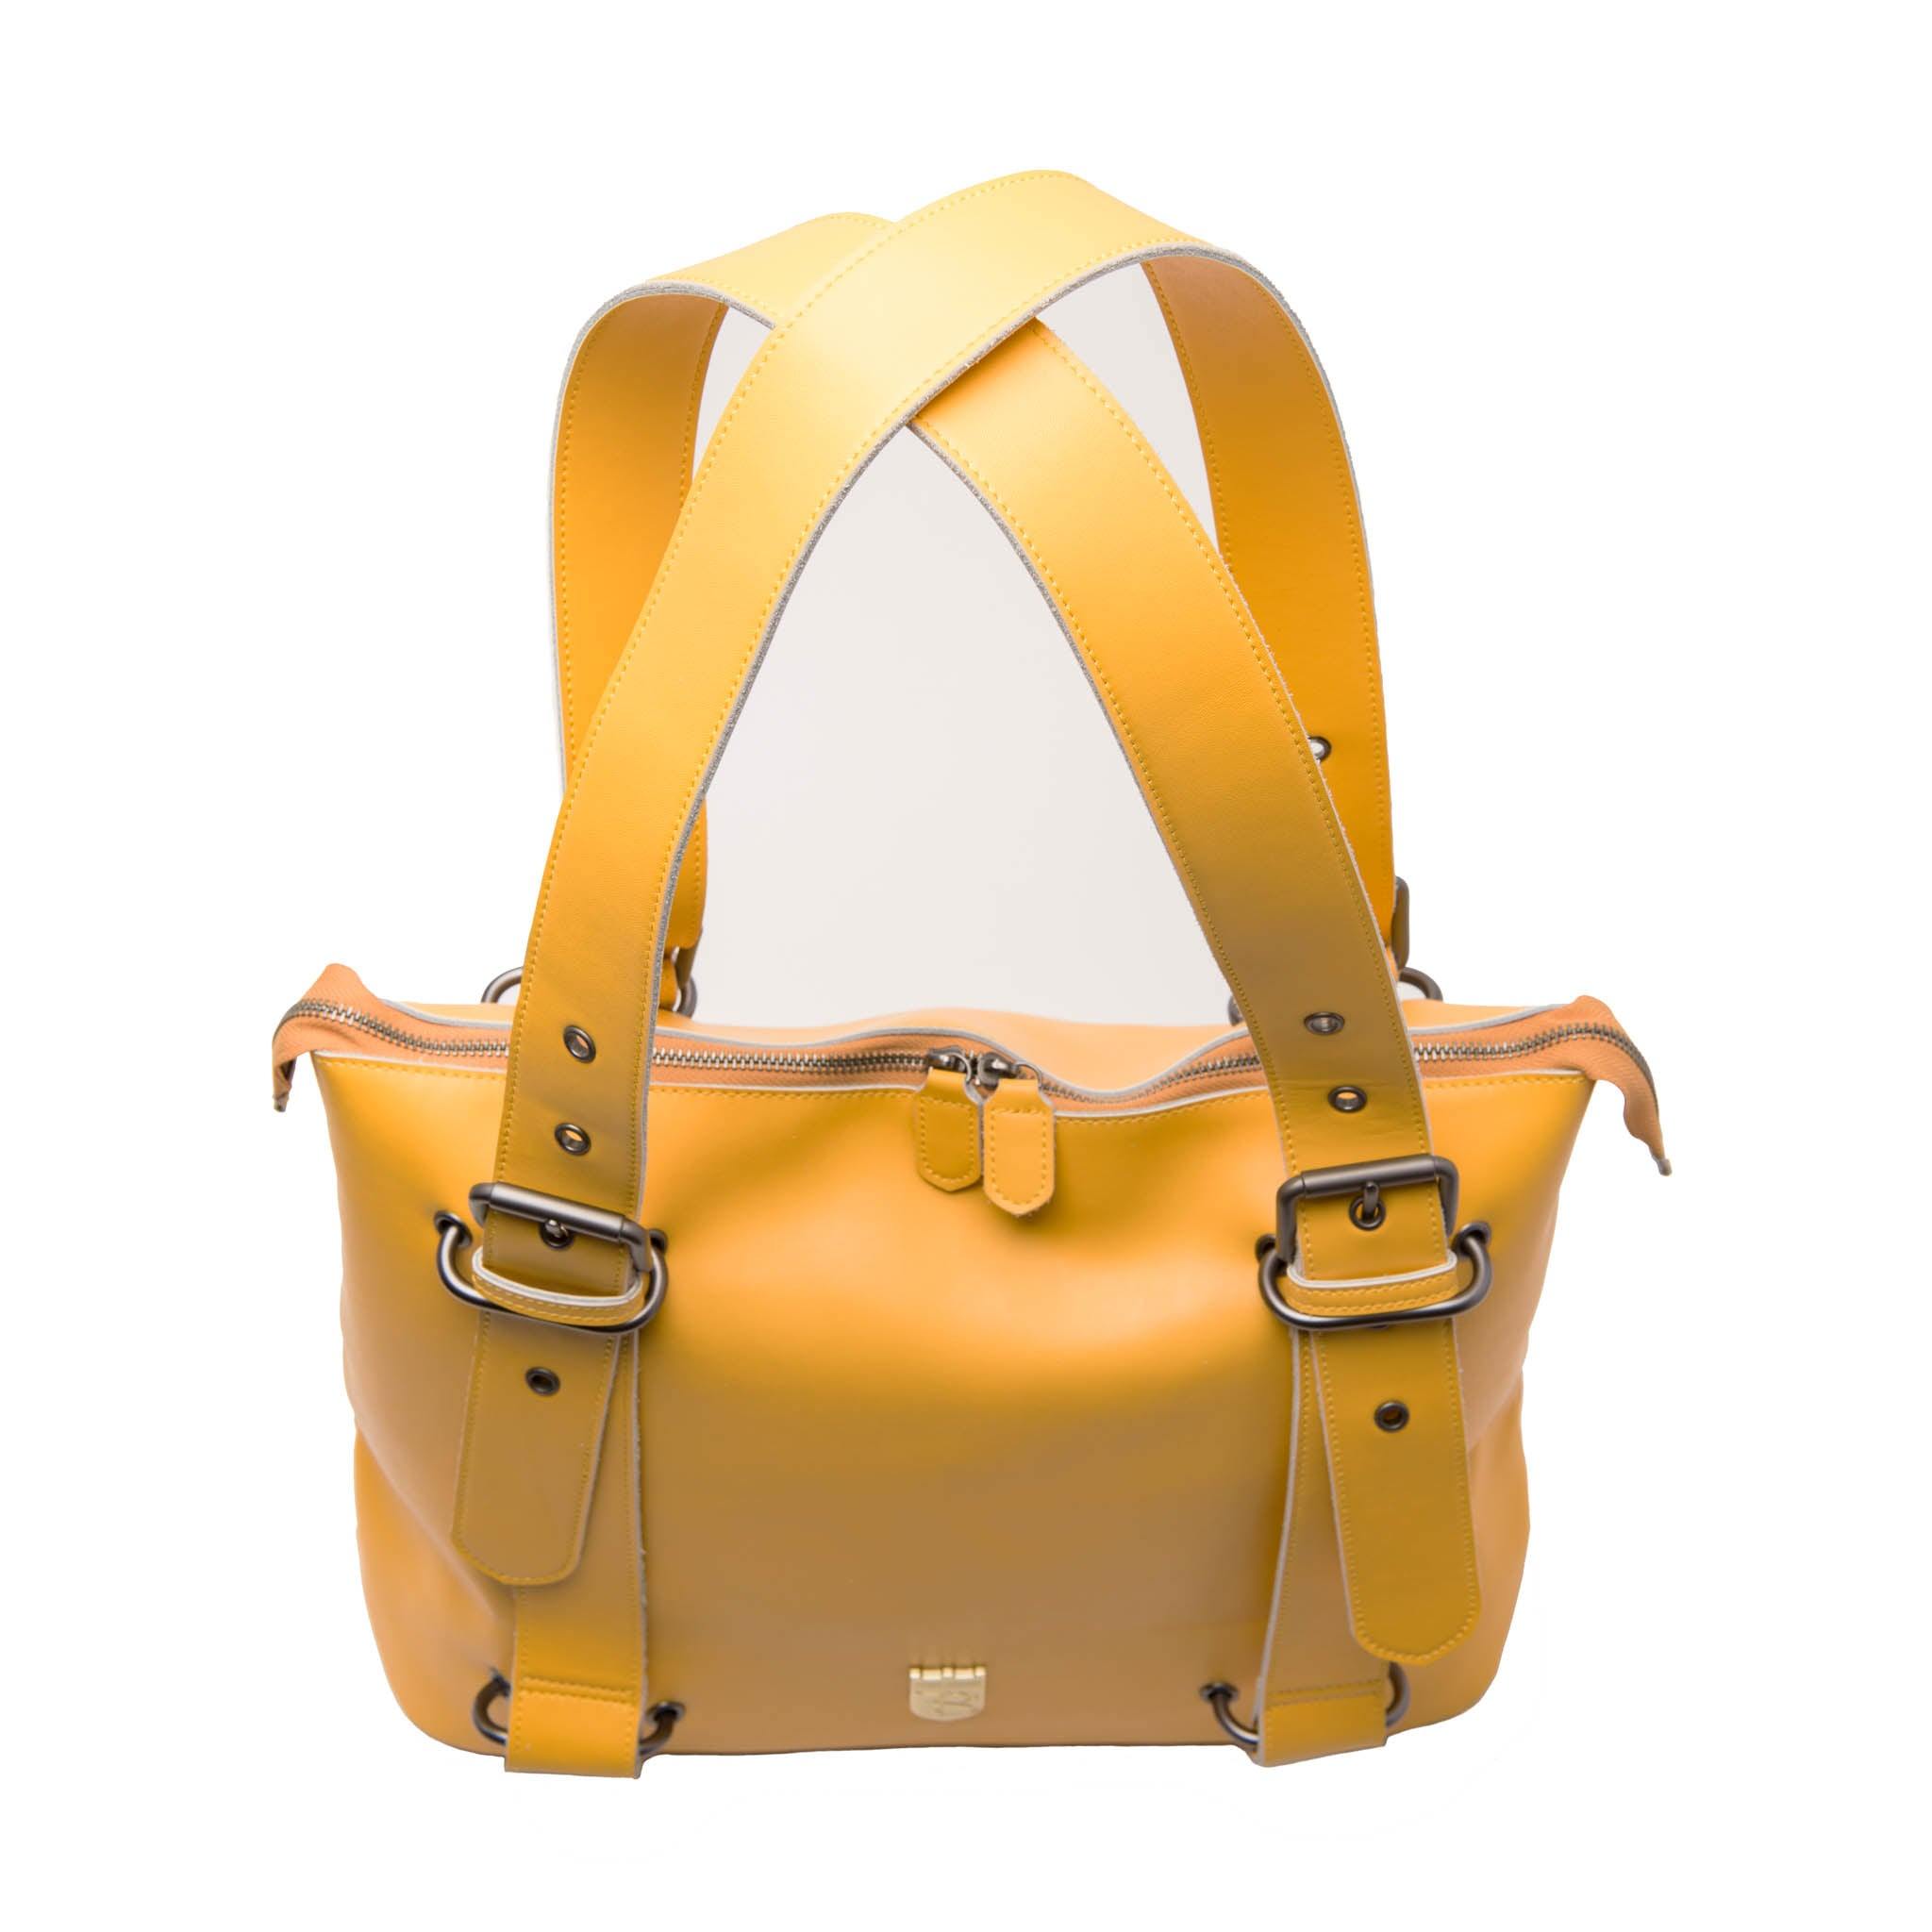 Explorer multi-function shoulderbag